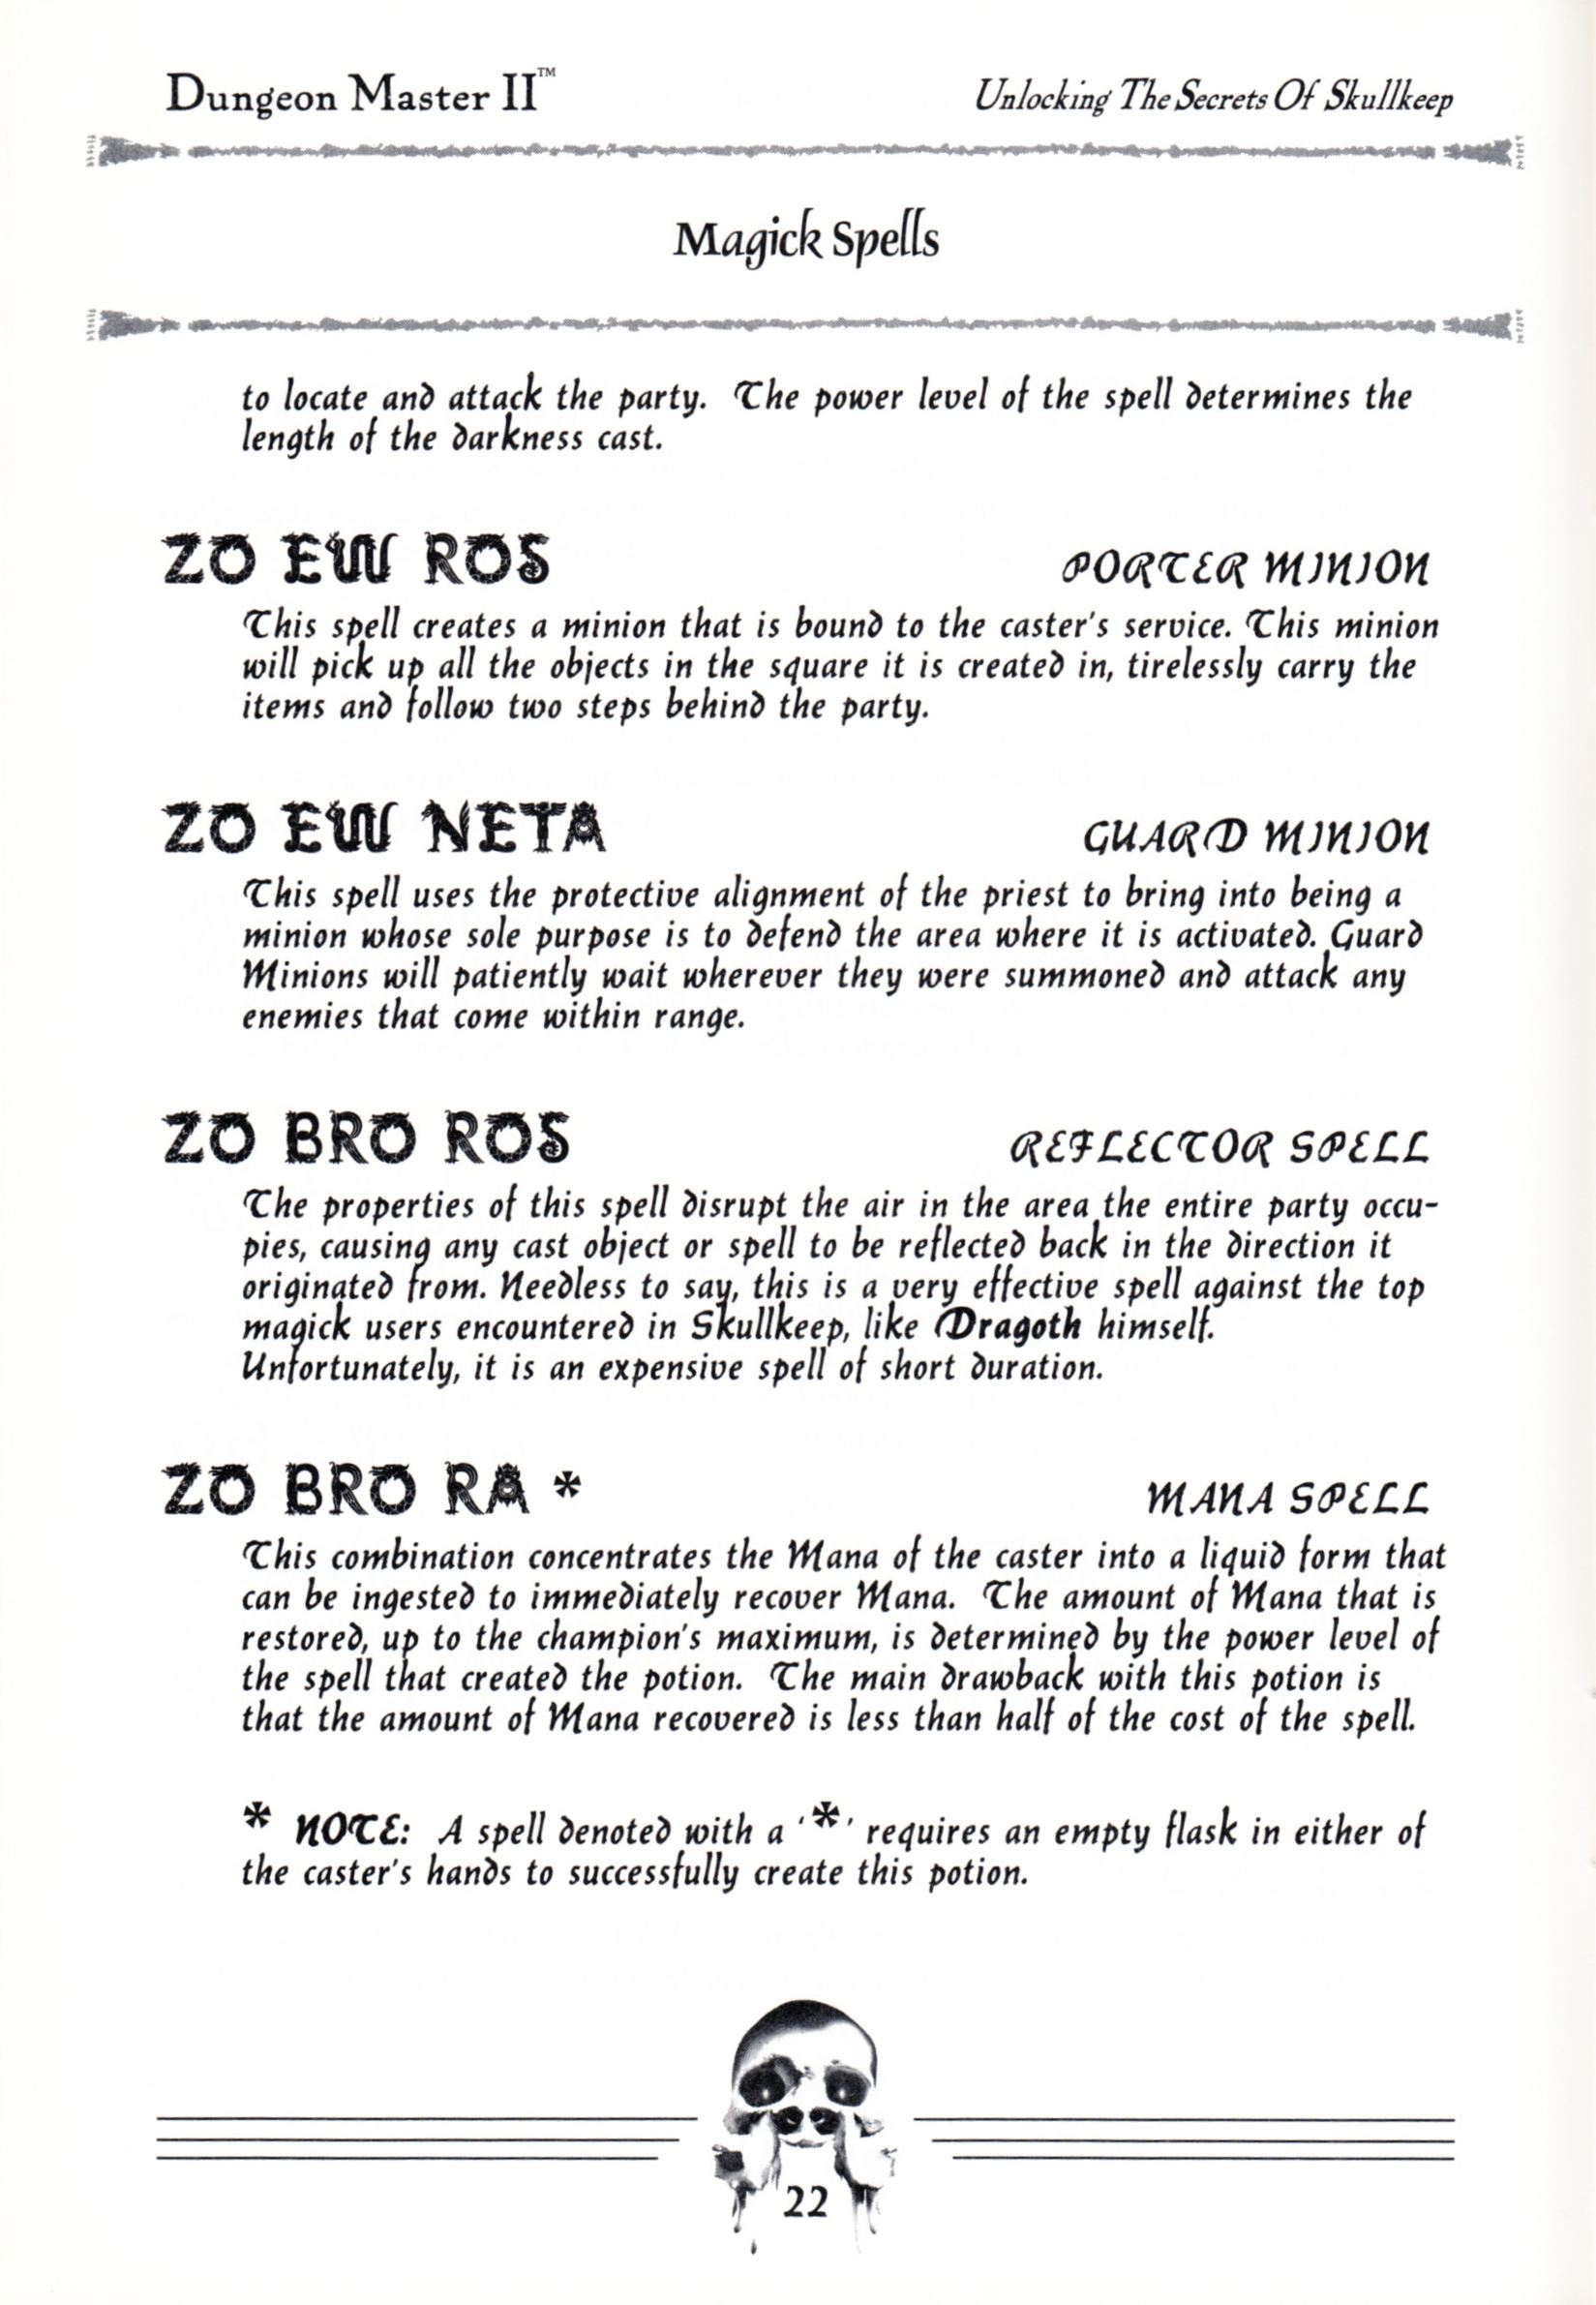 Hint Book - Dungeon Master II Clue Book - US - Page 024 - Scan